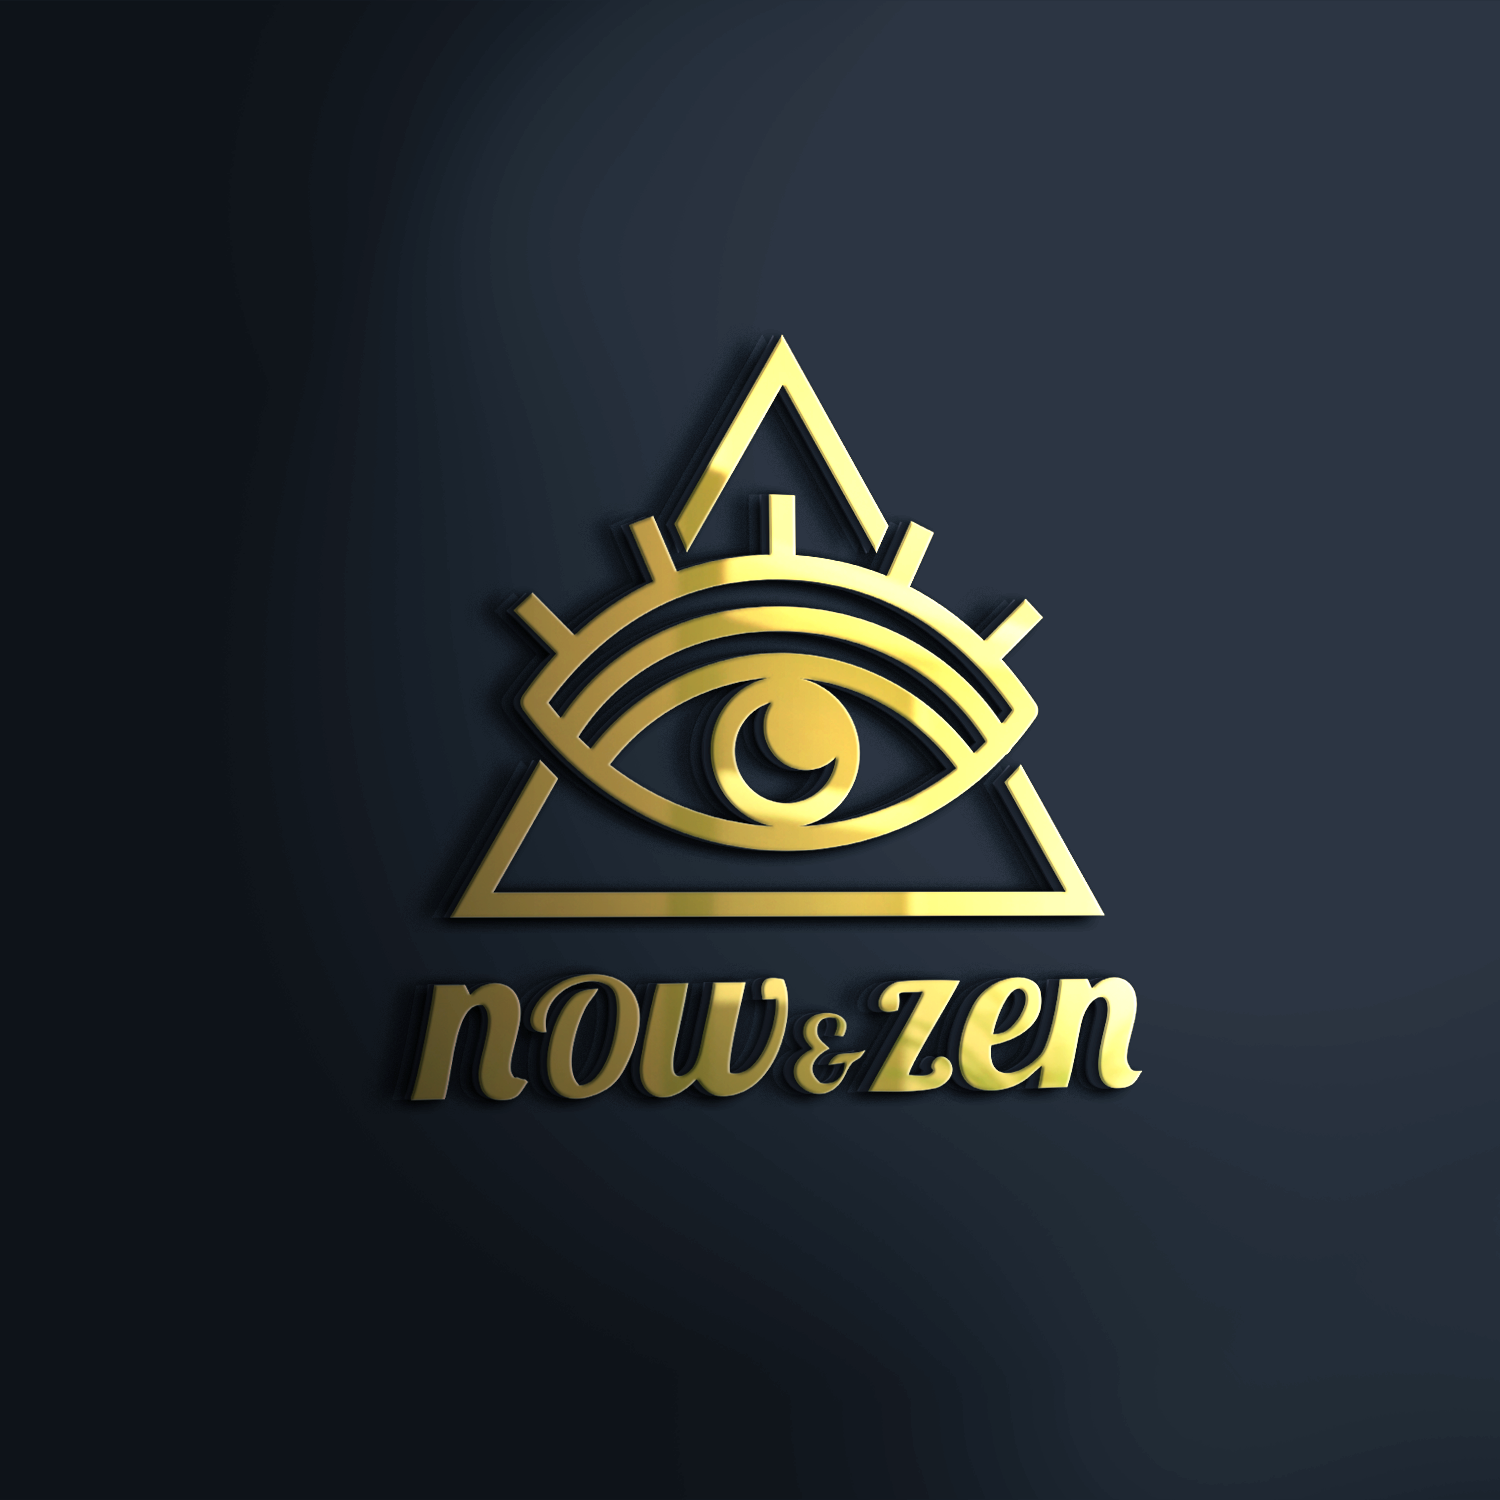 Now&Zen needs a logo. Simple and with spirituality.